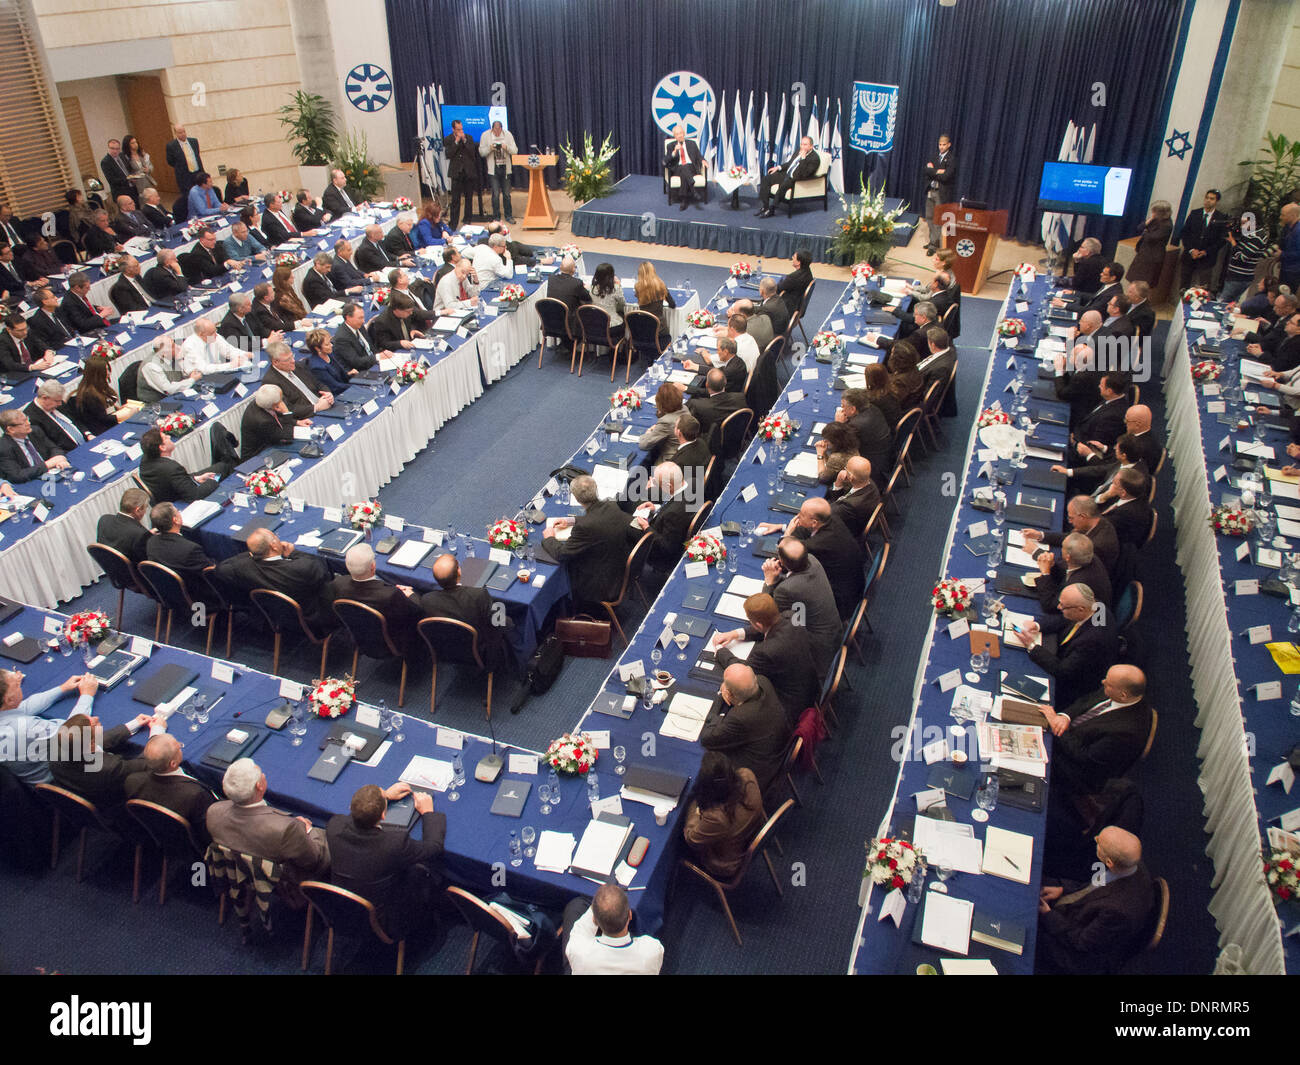 Jerusalem, Israel. 5th Jan, 2014. President Shimon Peres opened the Ambassadors Conference for heads of Israeli diplomatic missions worldwide alongside Foreign Minister Avigdor Lieberman at the Ministry of Foreign Affairs. Jerusalem, Israel. 5-Jan-2014.  President Peres opened the Ambassadors Conference for heads of Israeli diplomatic missions worldwide alongside Foreign Minister Lieberman at the Ministry of Foreign Affairs. Credit:  Nir Alon/Alamy Live News - Stock Image